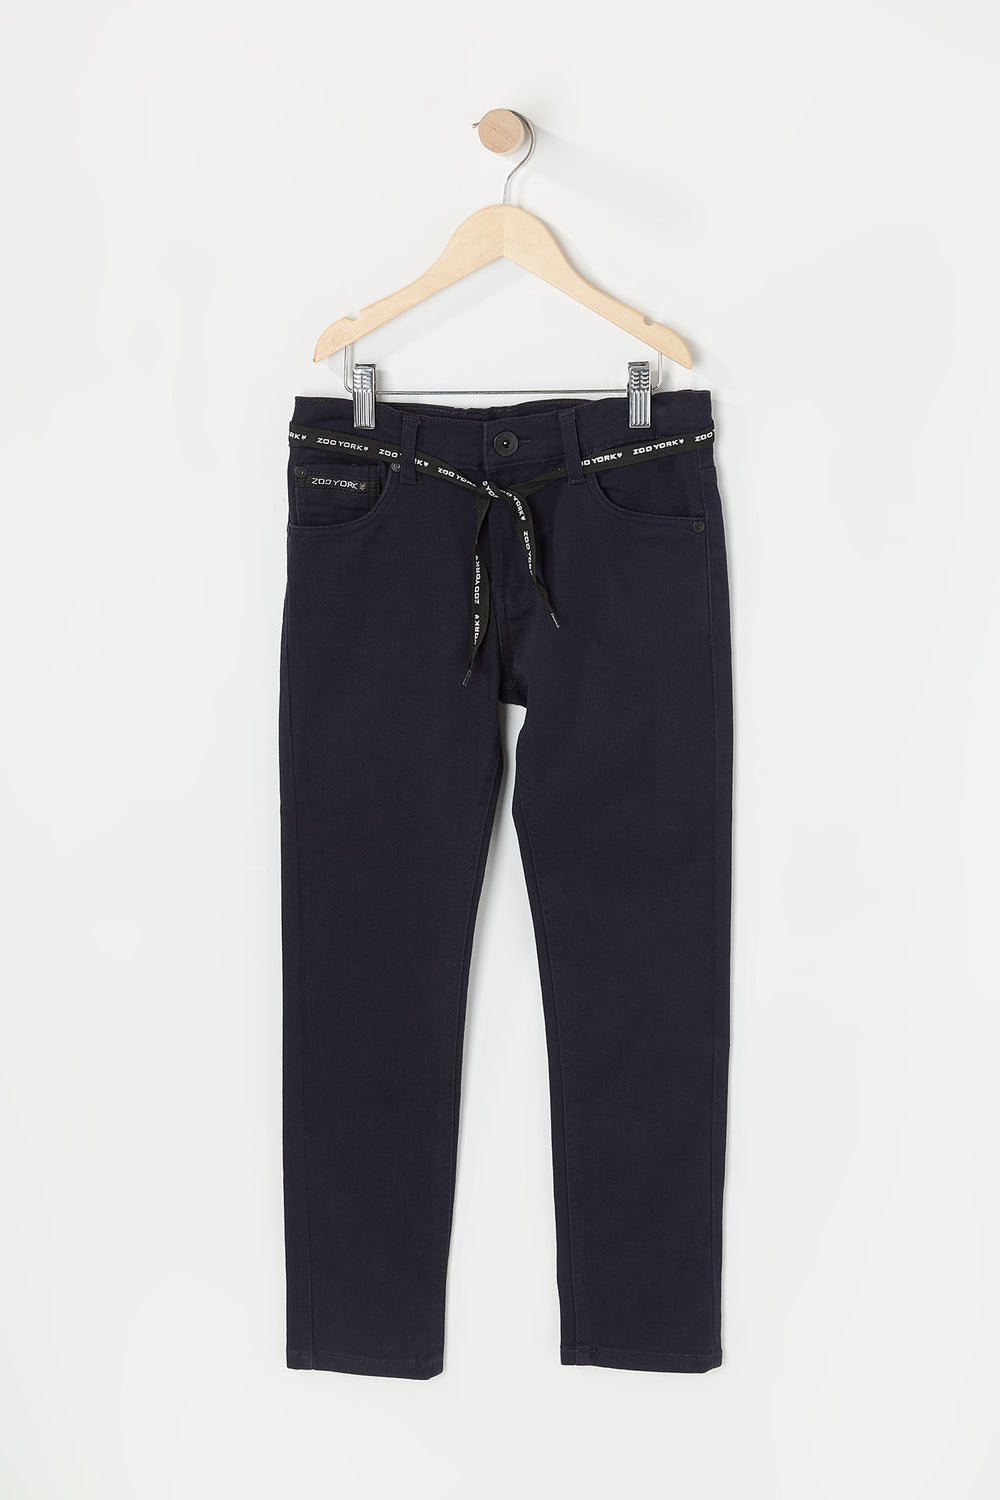 Zoo York Youth Skinny Jeans Navy